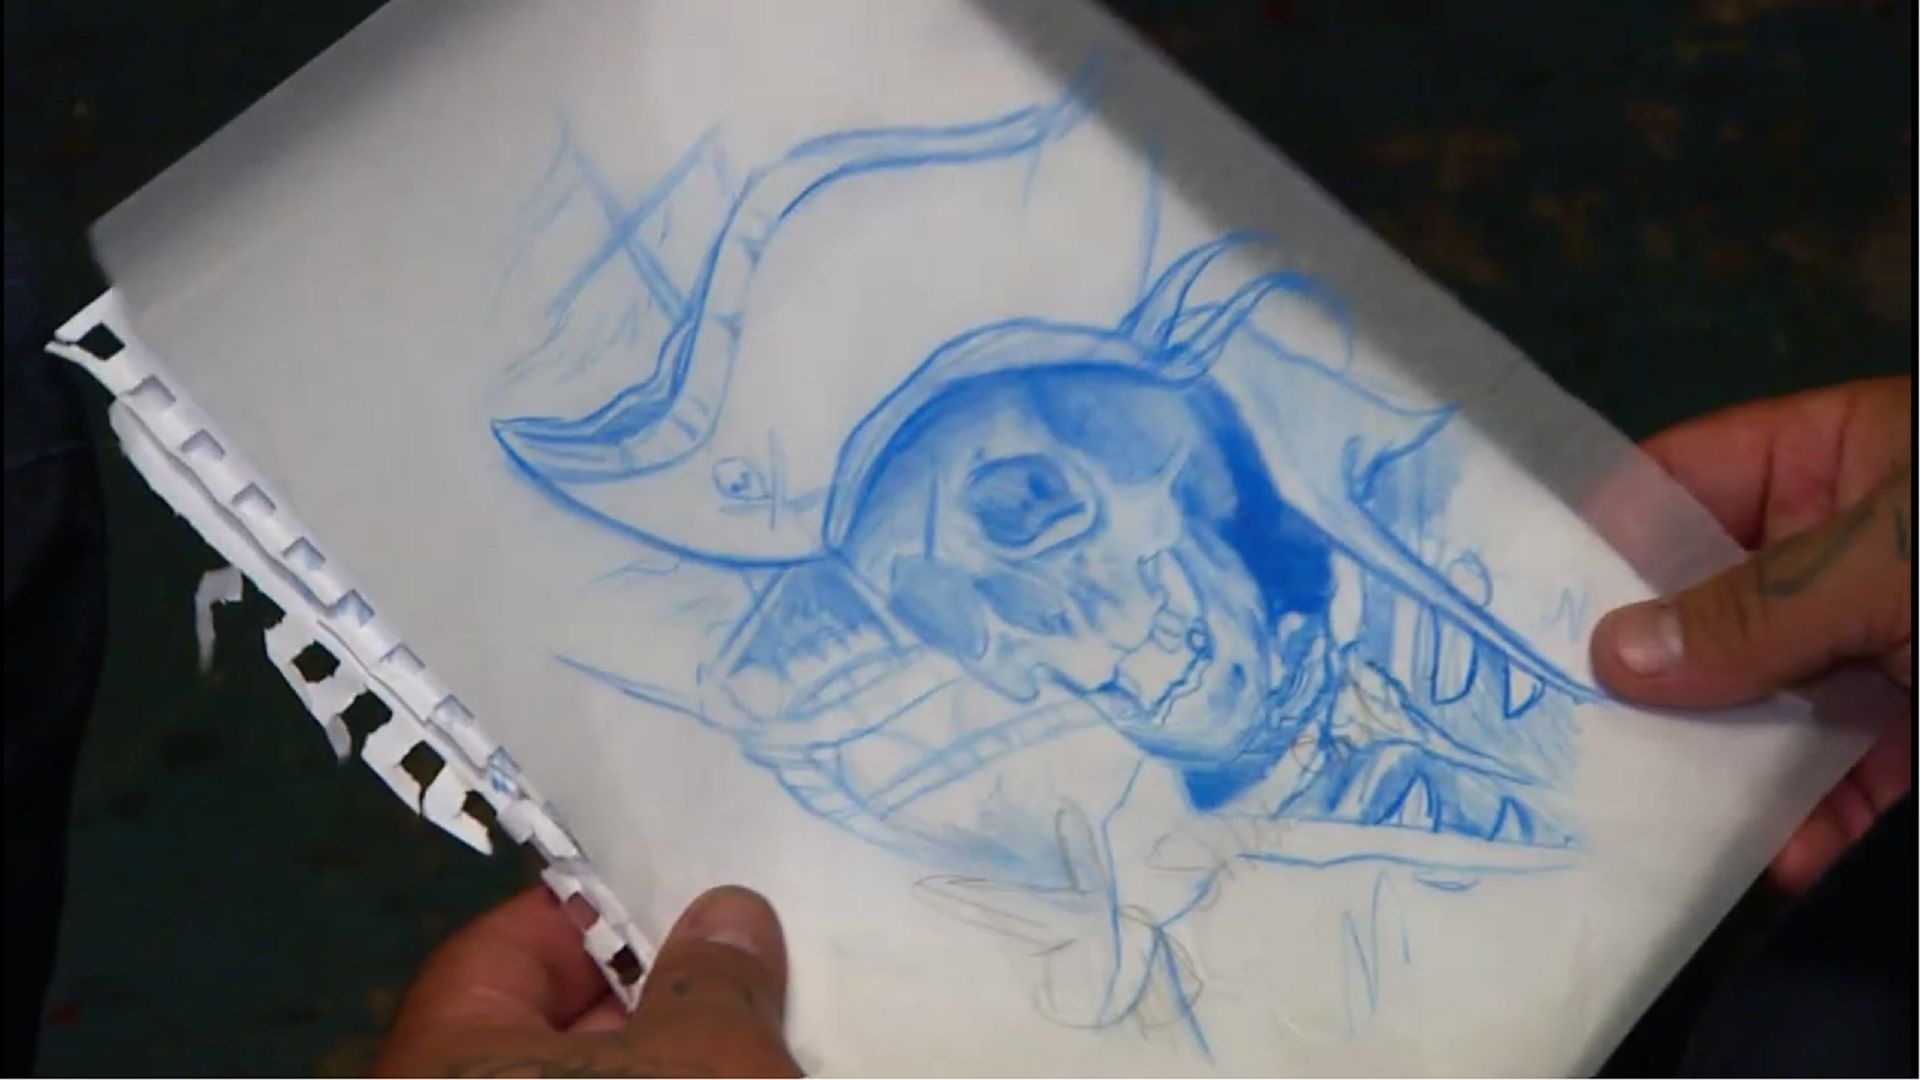 Tattoo nightmares season 1 ep 4 butt pirate full for Is tattoo nightmares still on